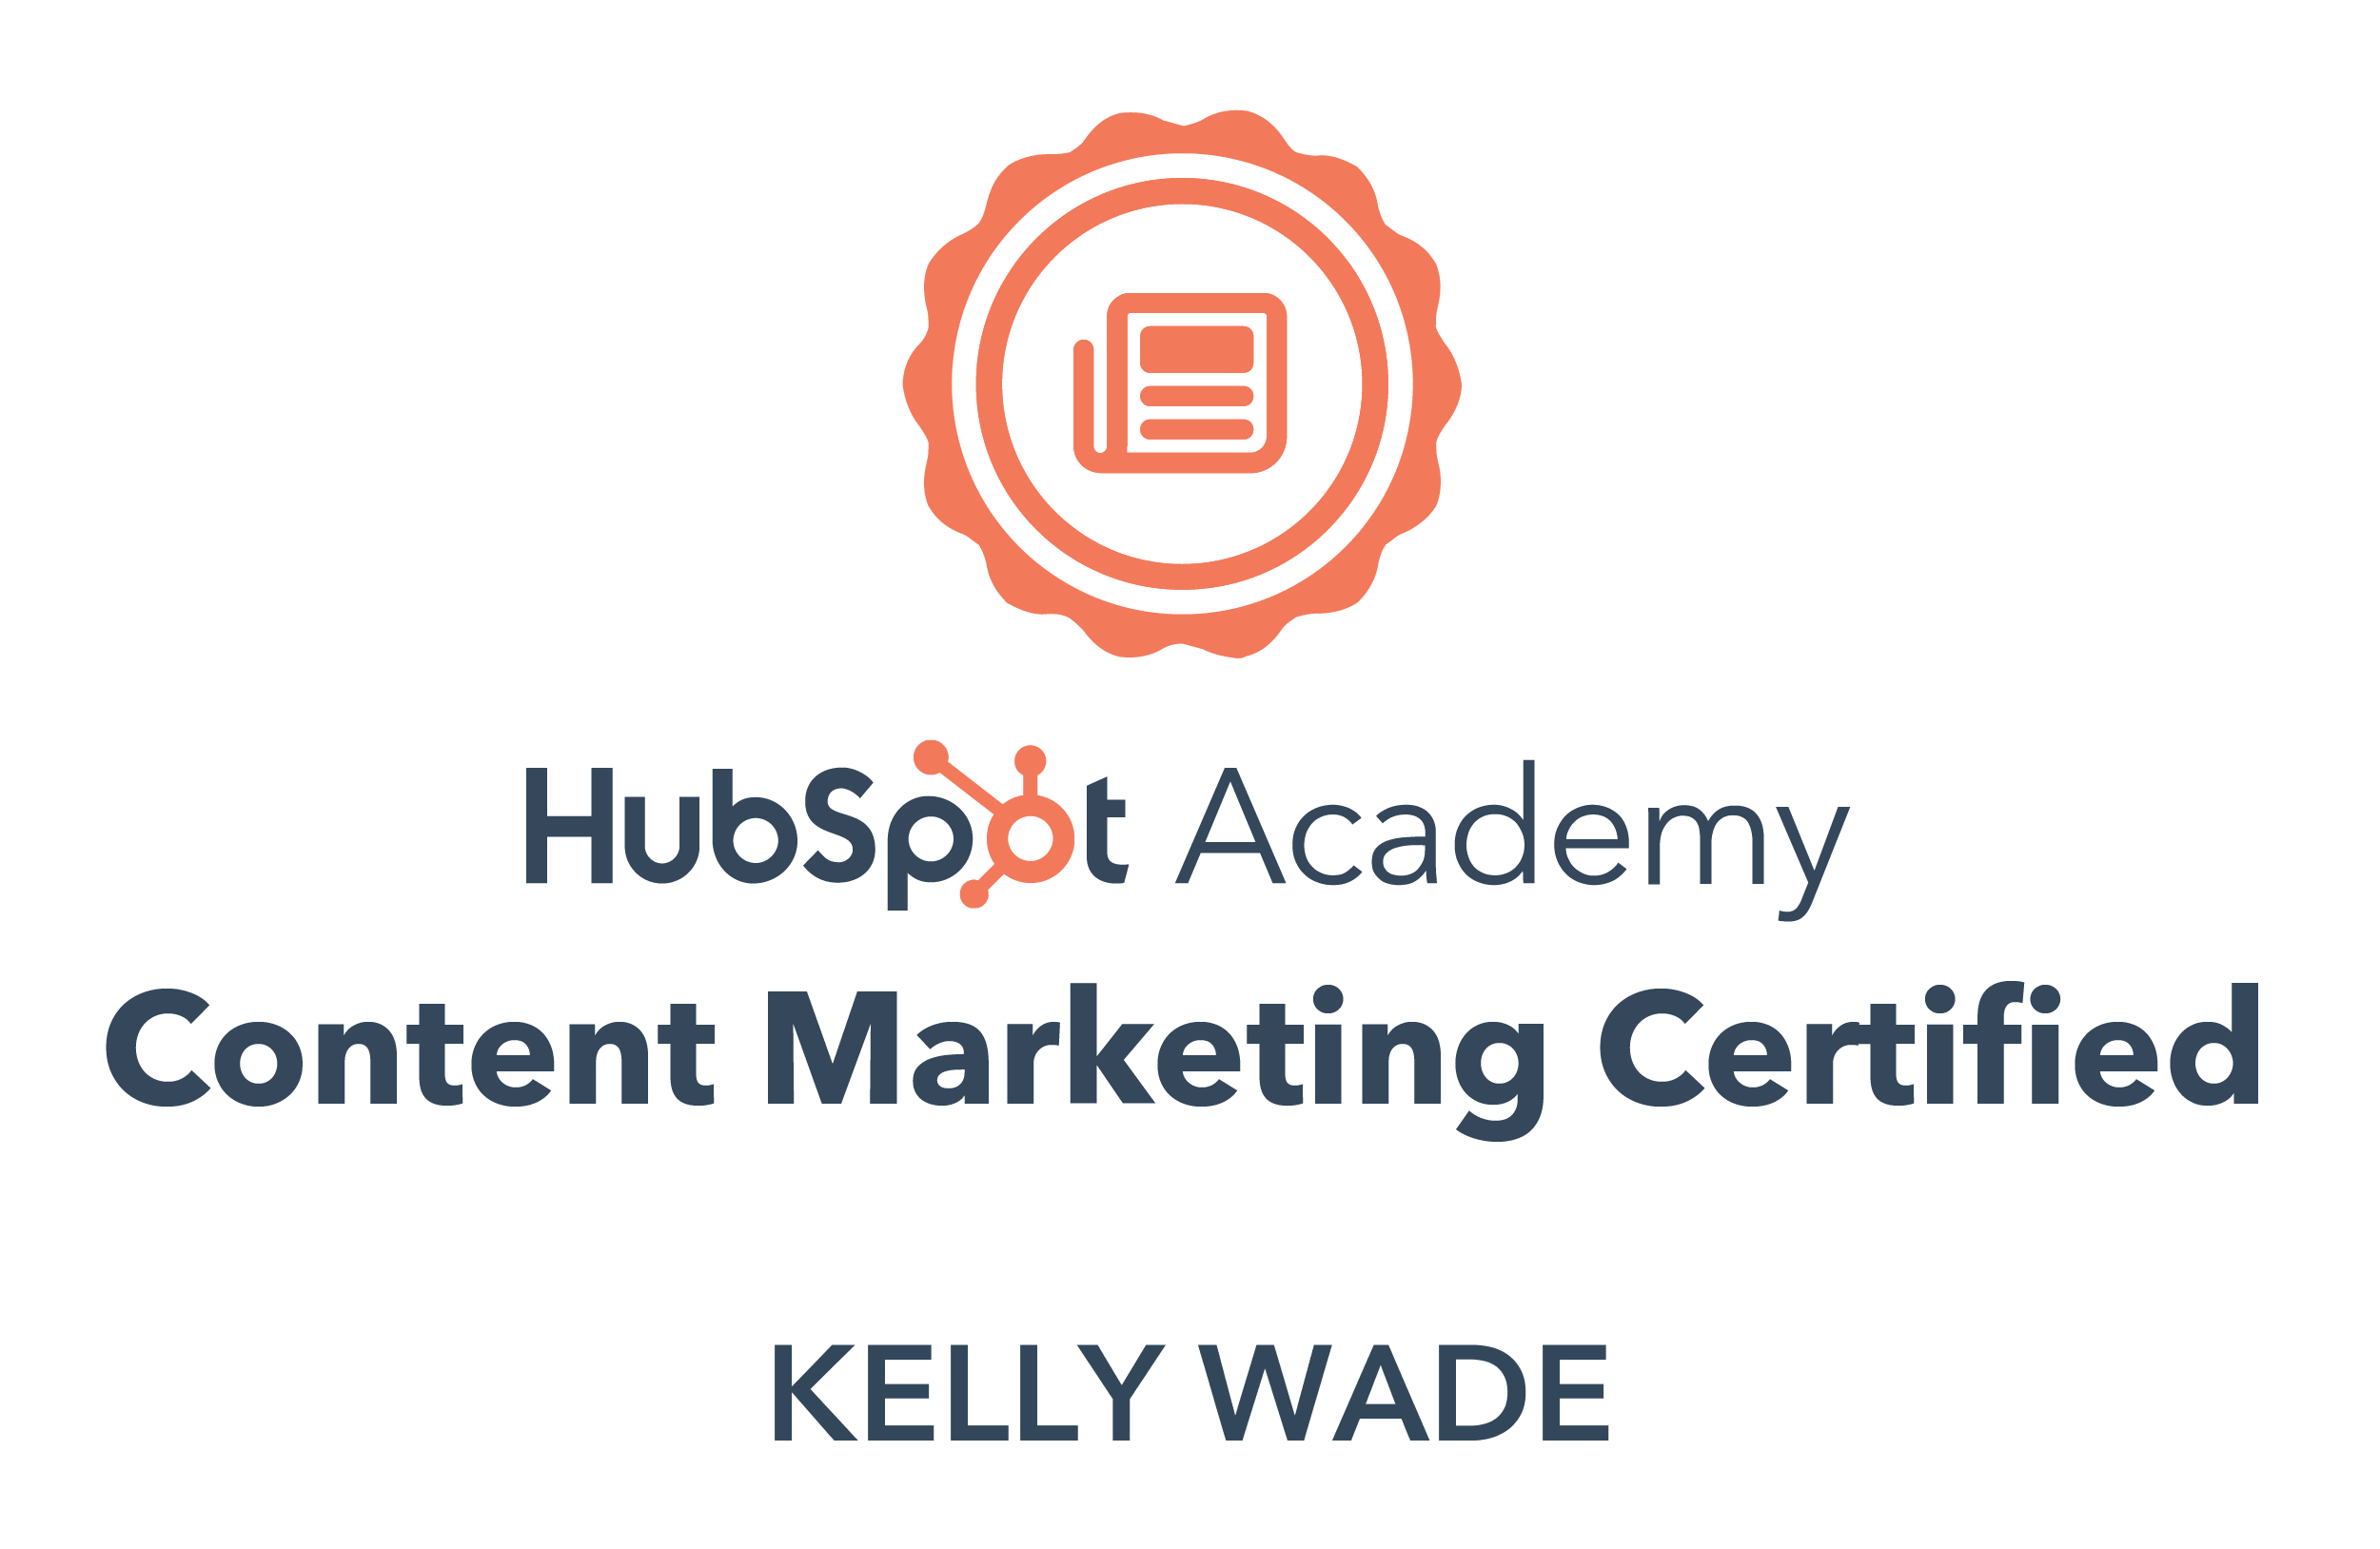 Certificate that proves Kelly has passed the HubSpot Academy Content Marketing certification